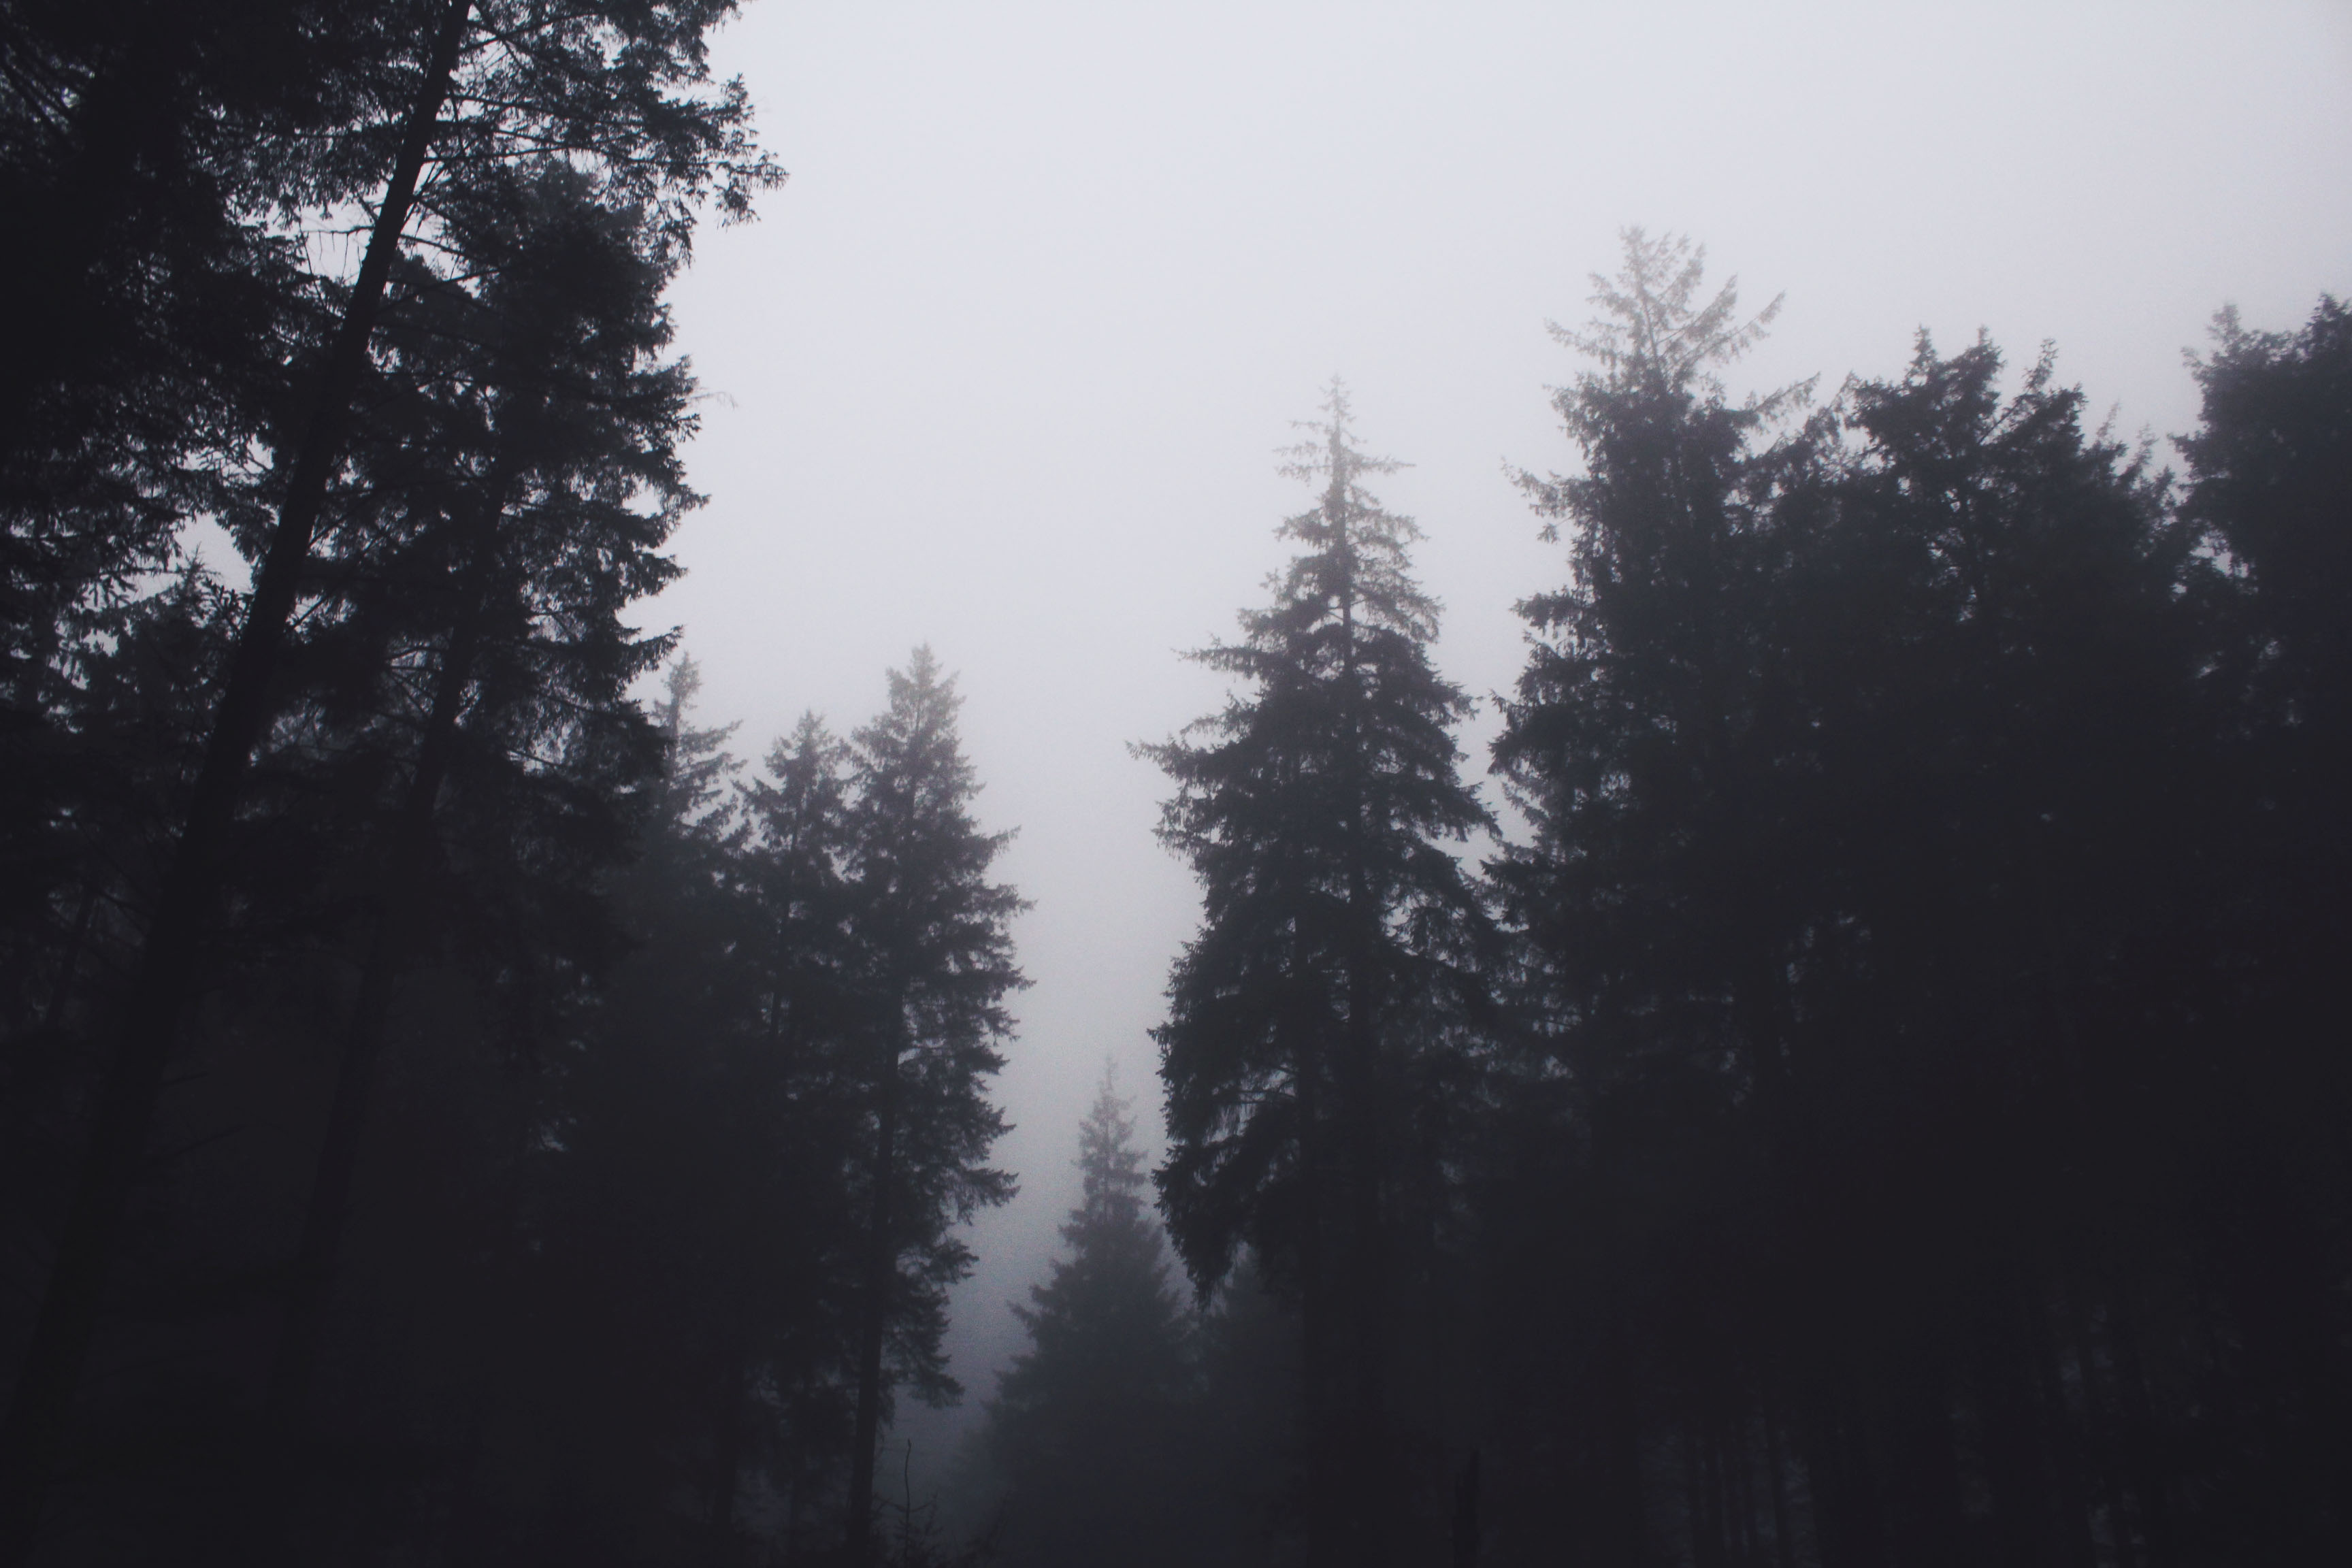 Eerie pine treeline at Bellever Forest, Dartmoor